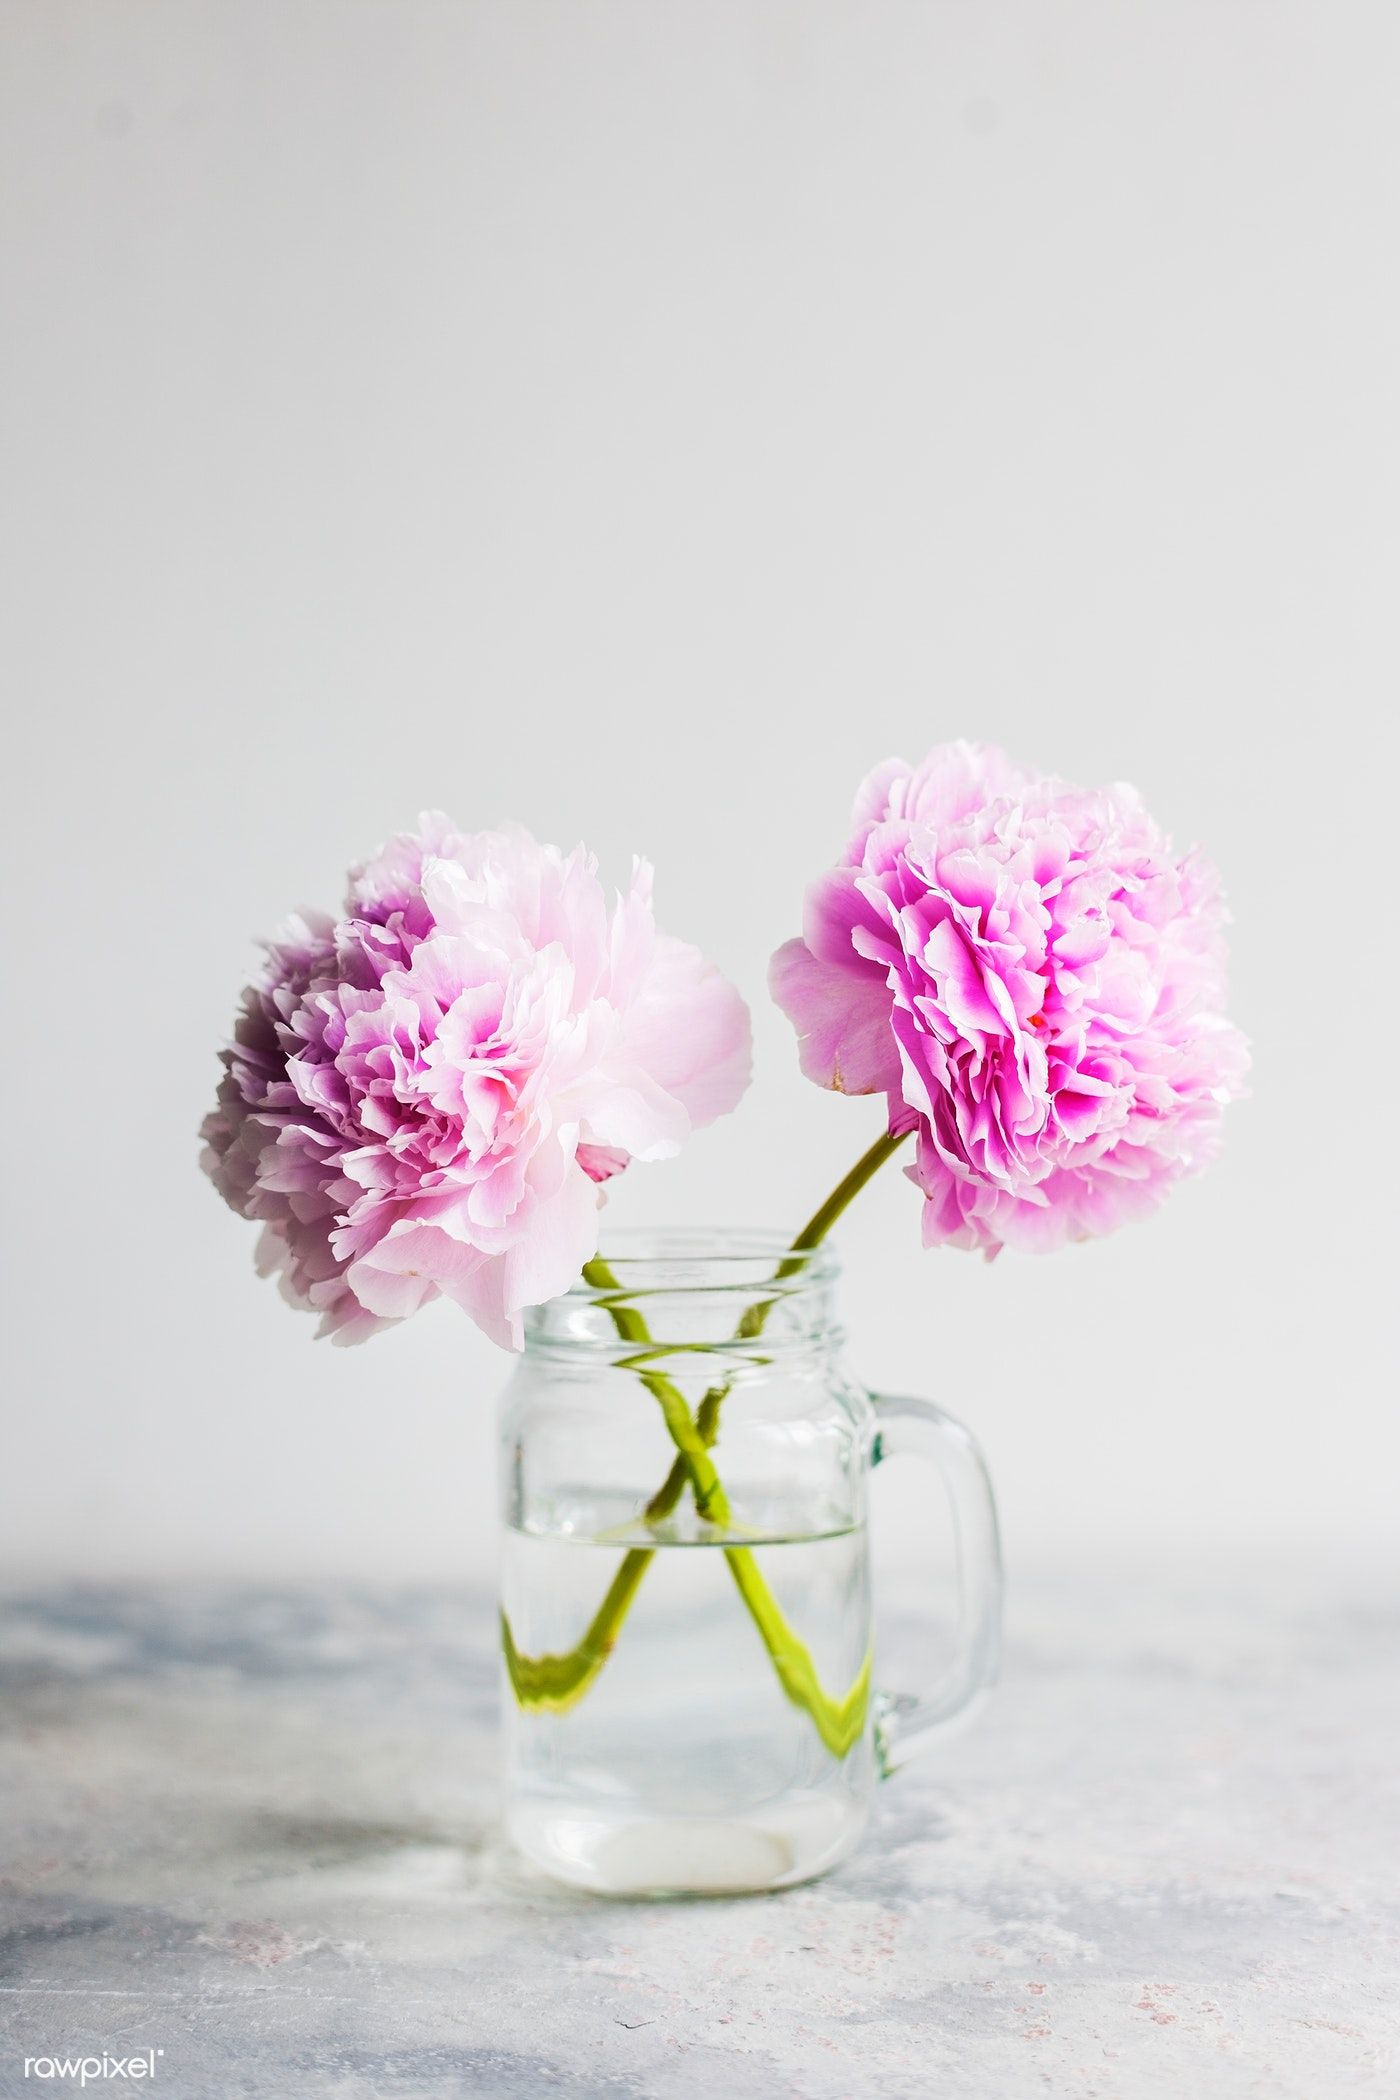 Download Premium Photo Of Decorative Pink Carnations In A Jug 94097